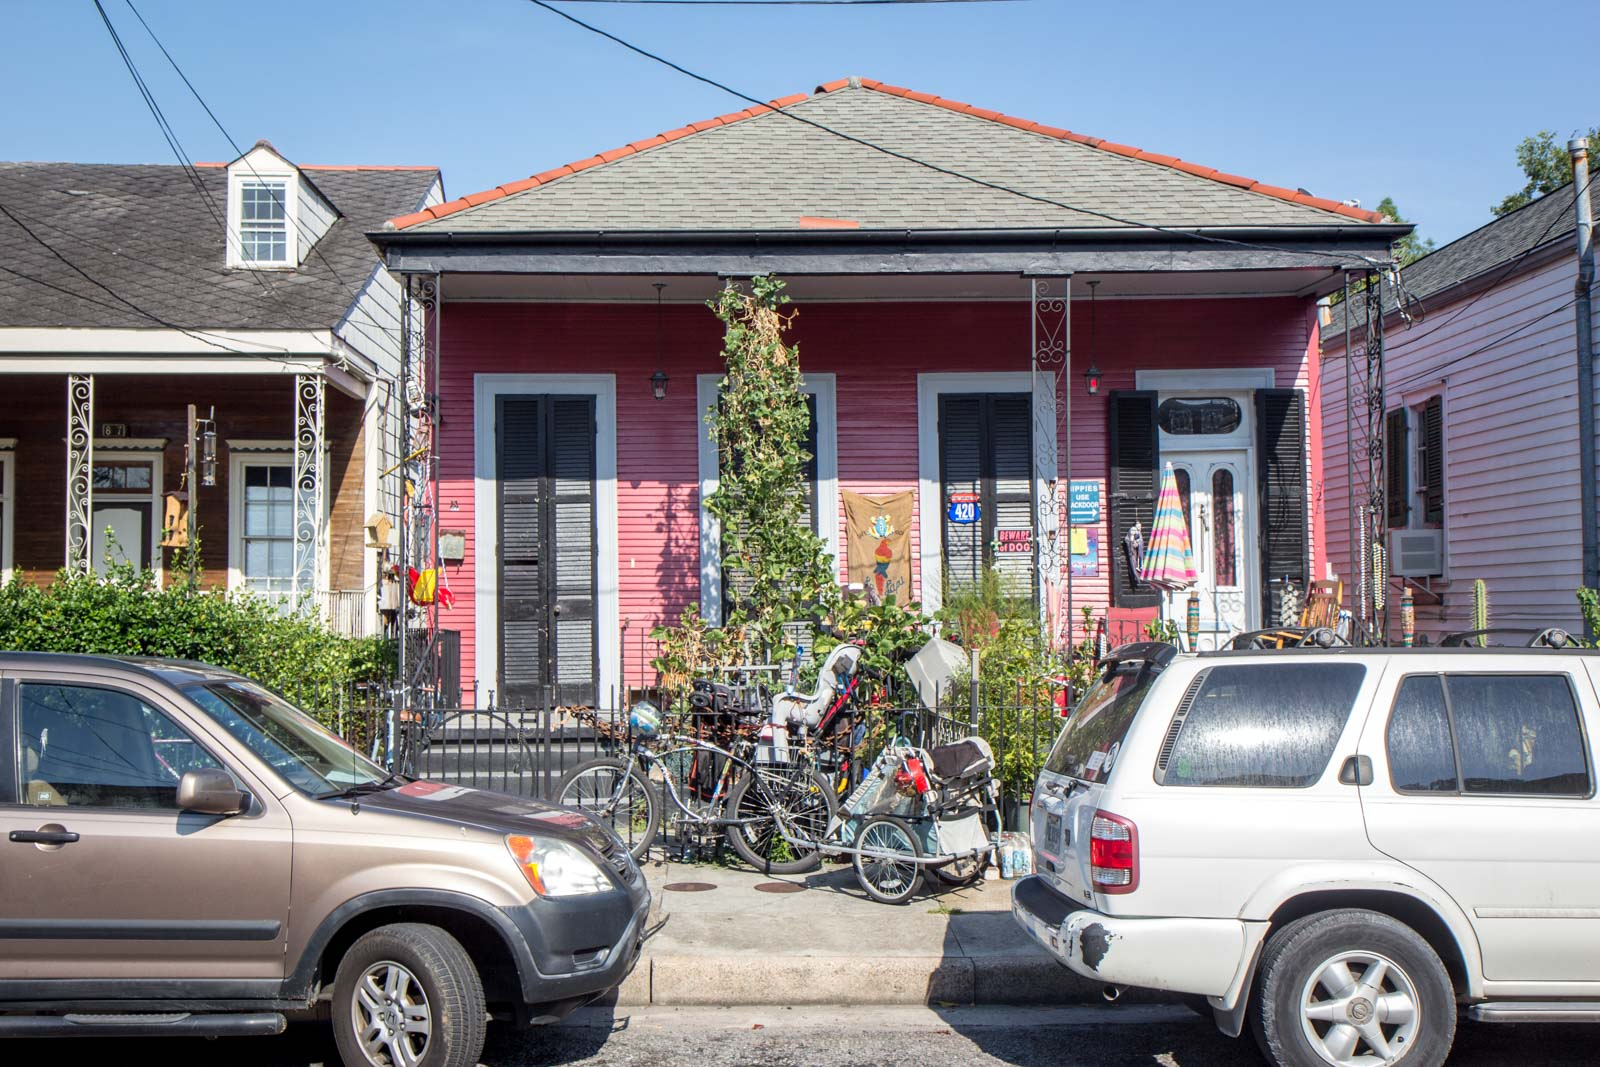 Things to do in Bywater, New Orleans